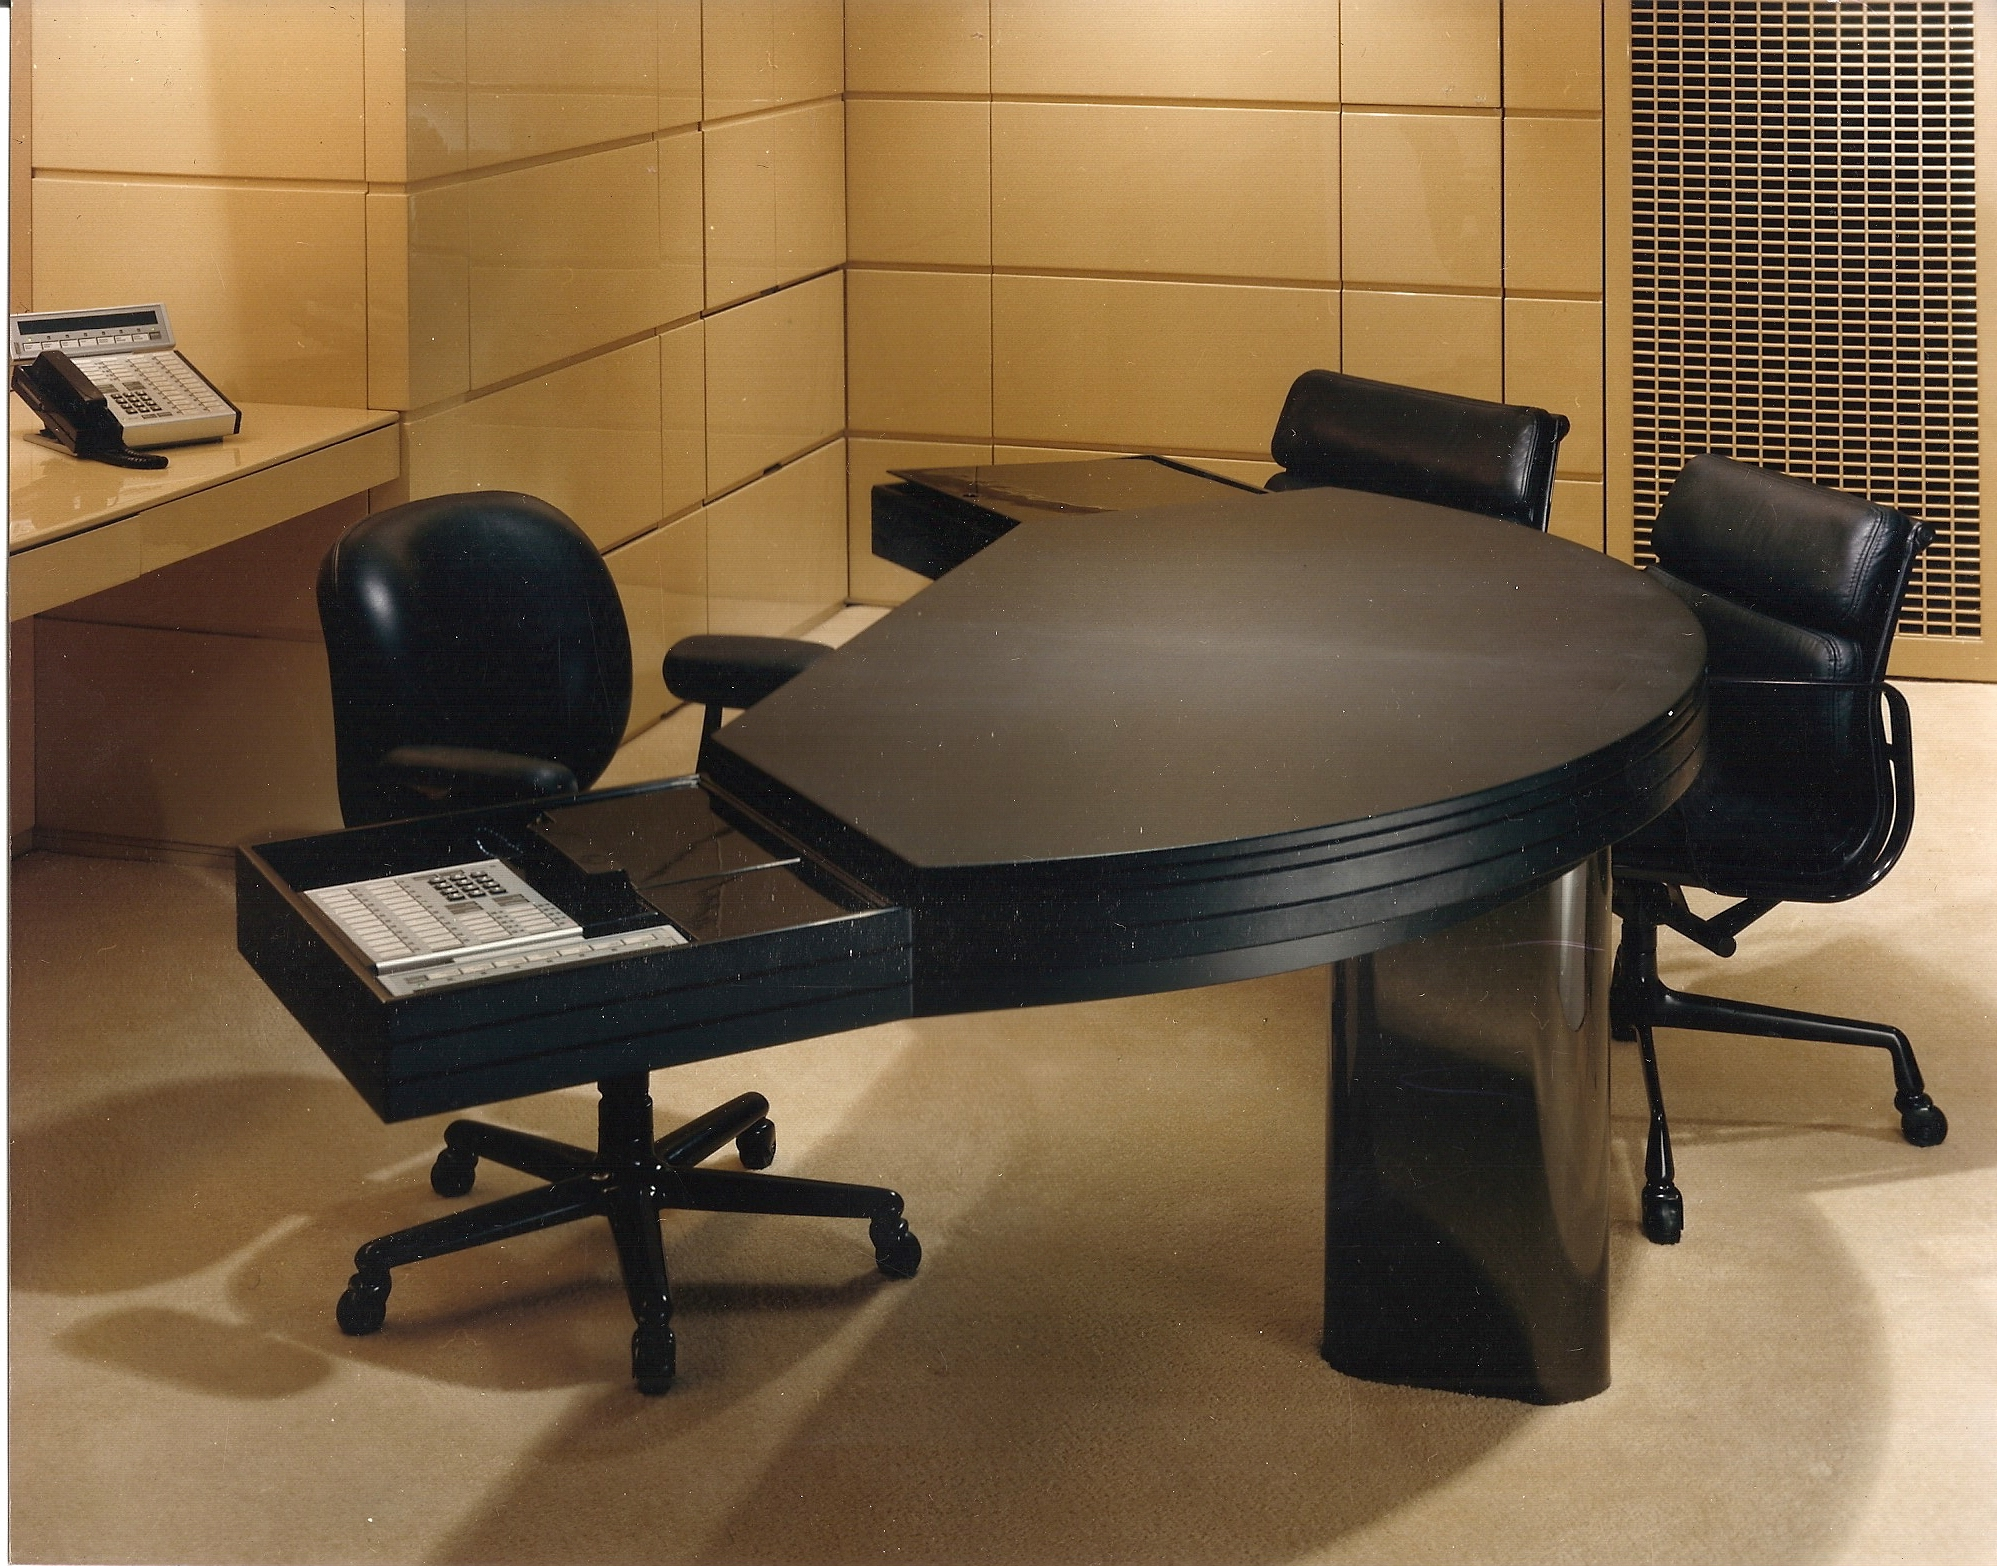 Commercial custom executive desk